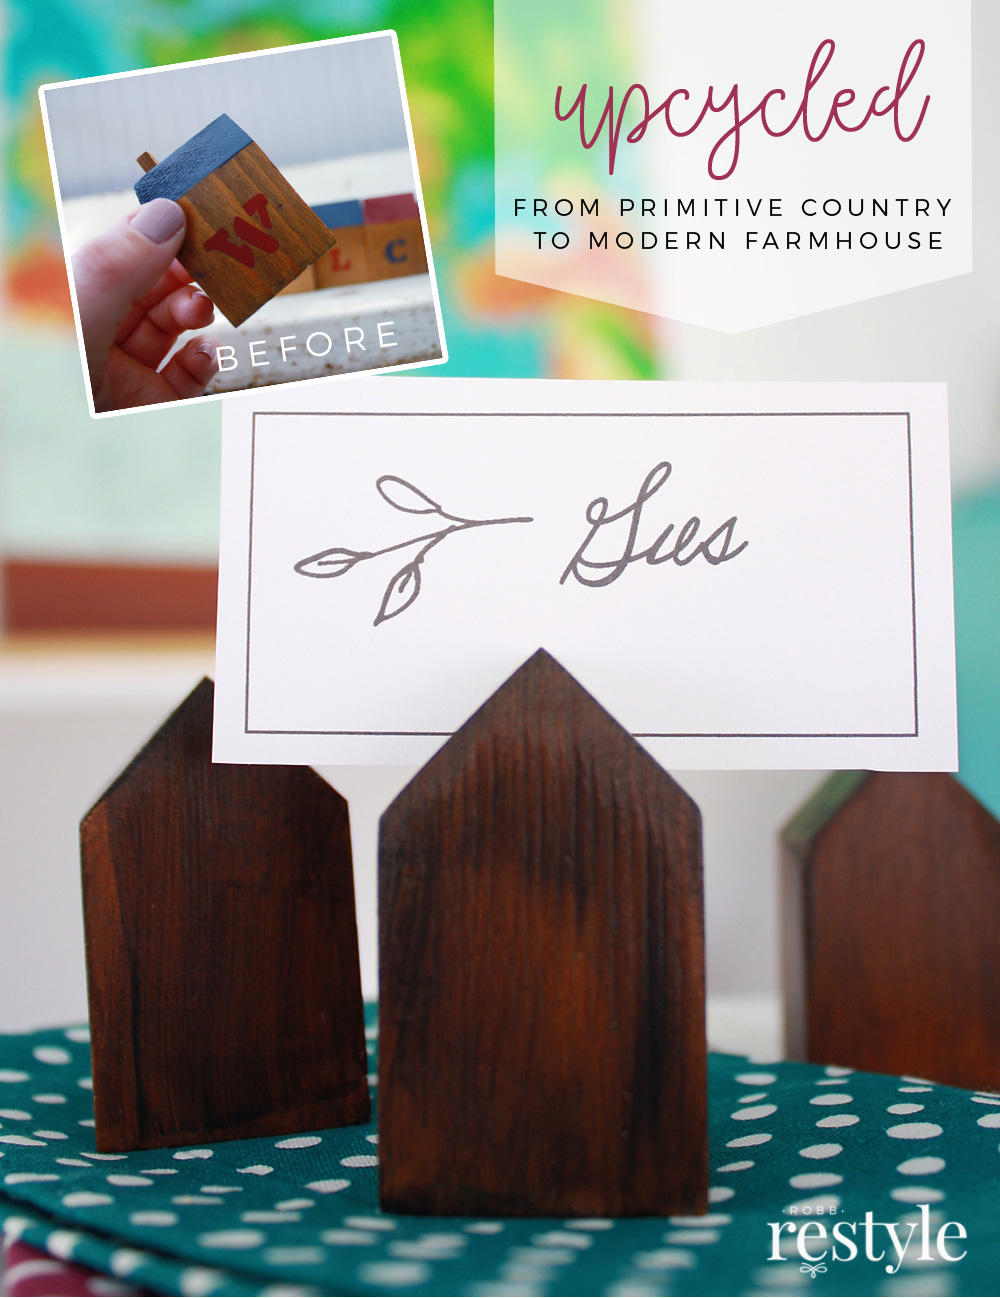 Upcycle Decor Idea - House Place Card Holder